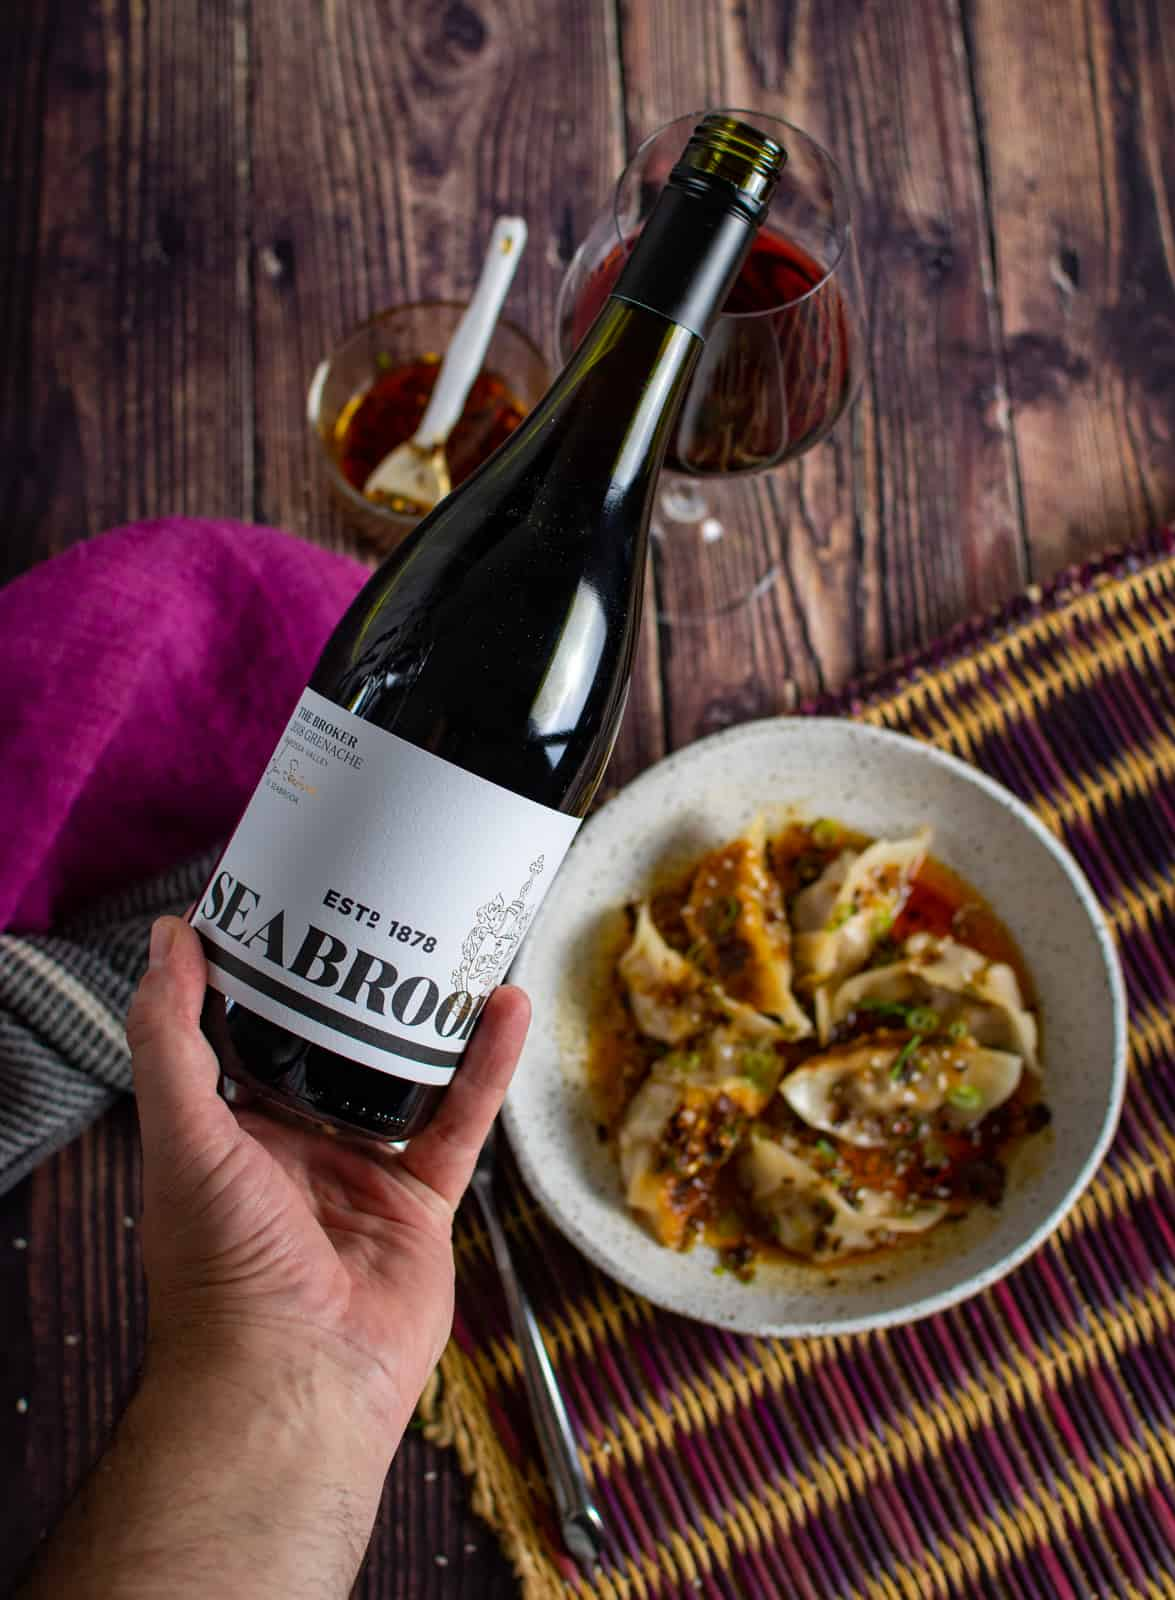 someone pouri g a glass of seabrook grenache with a bol of dumplings in the background